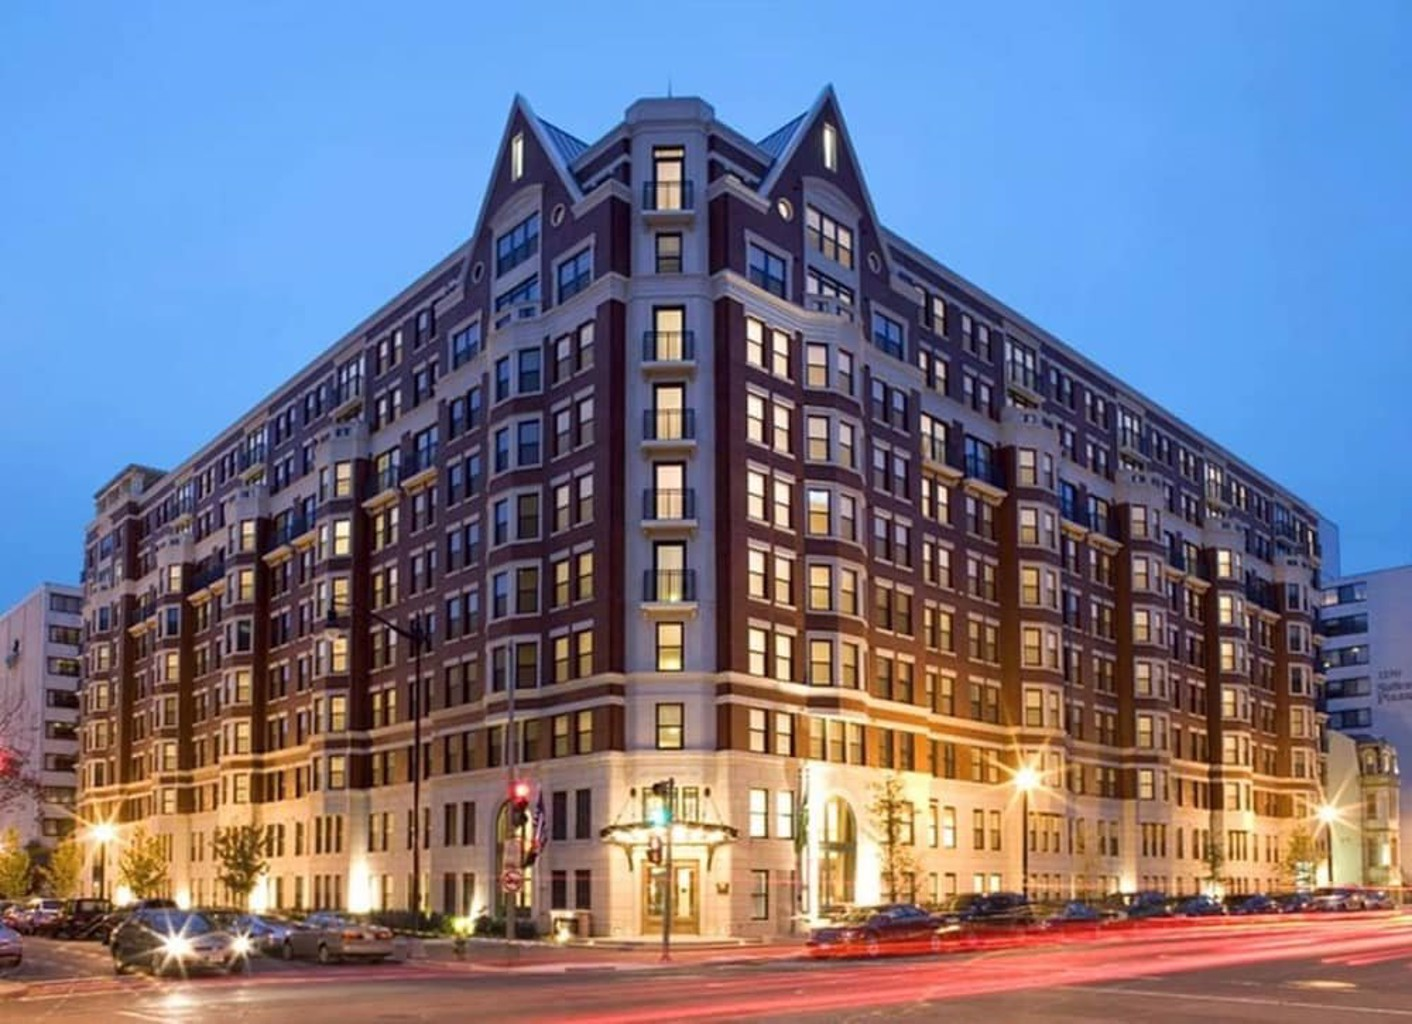 Bluebird Suites in the Heart of DC